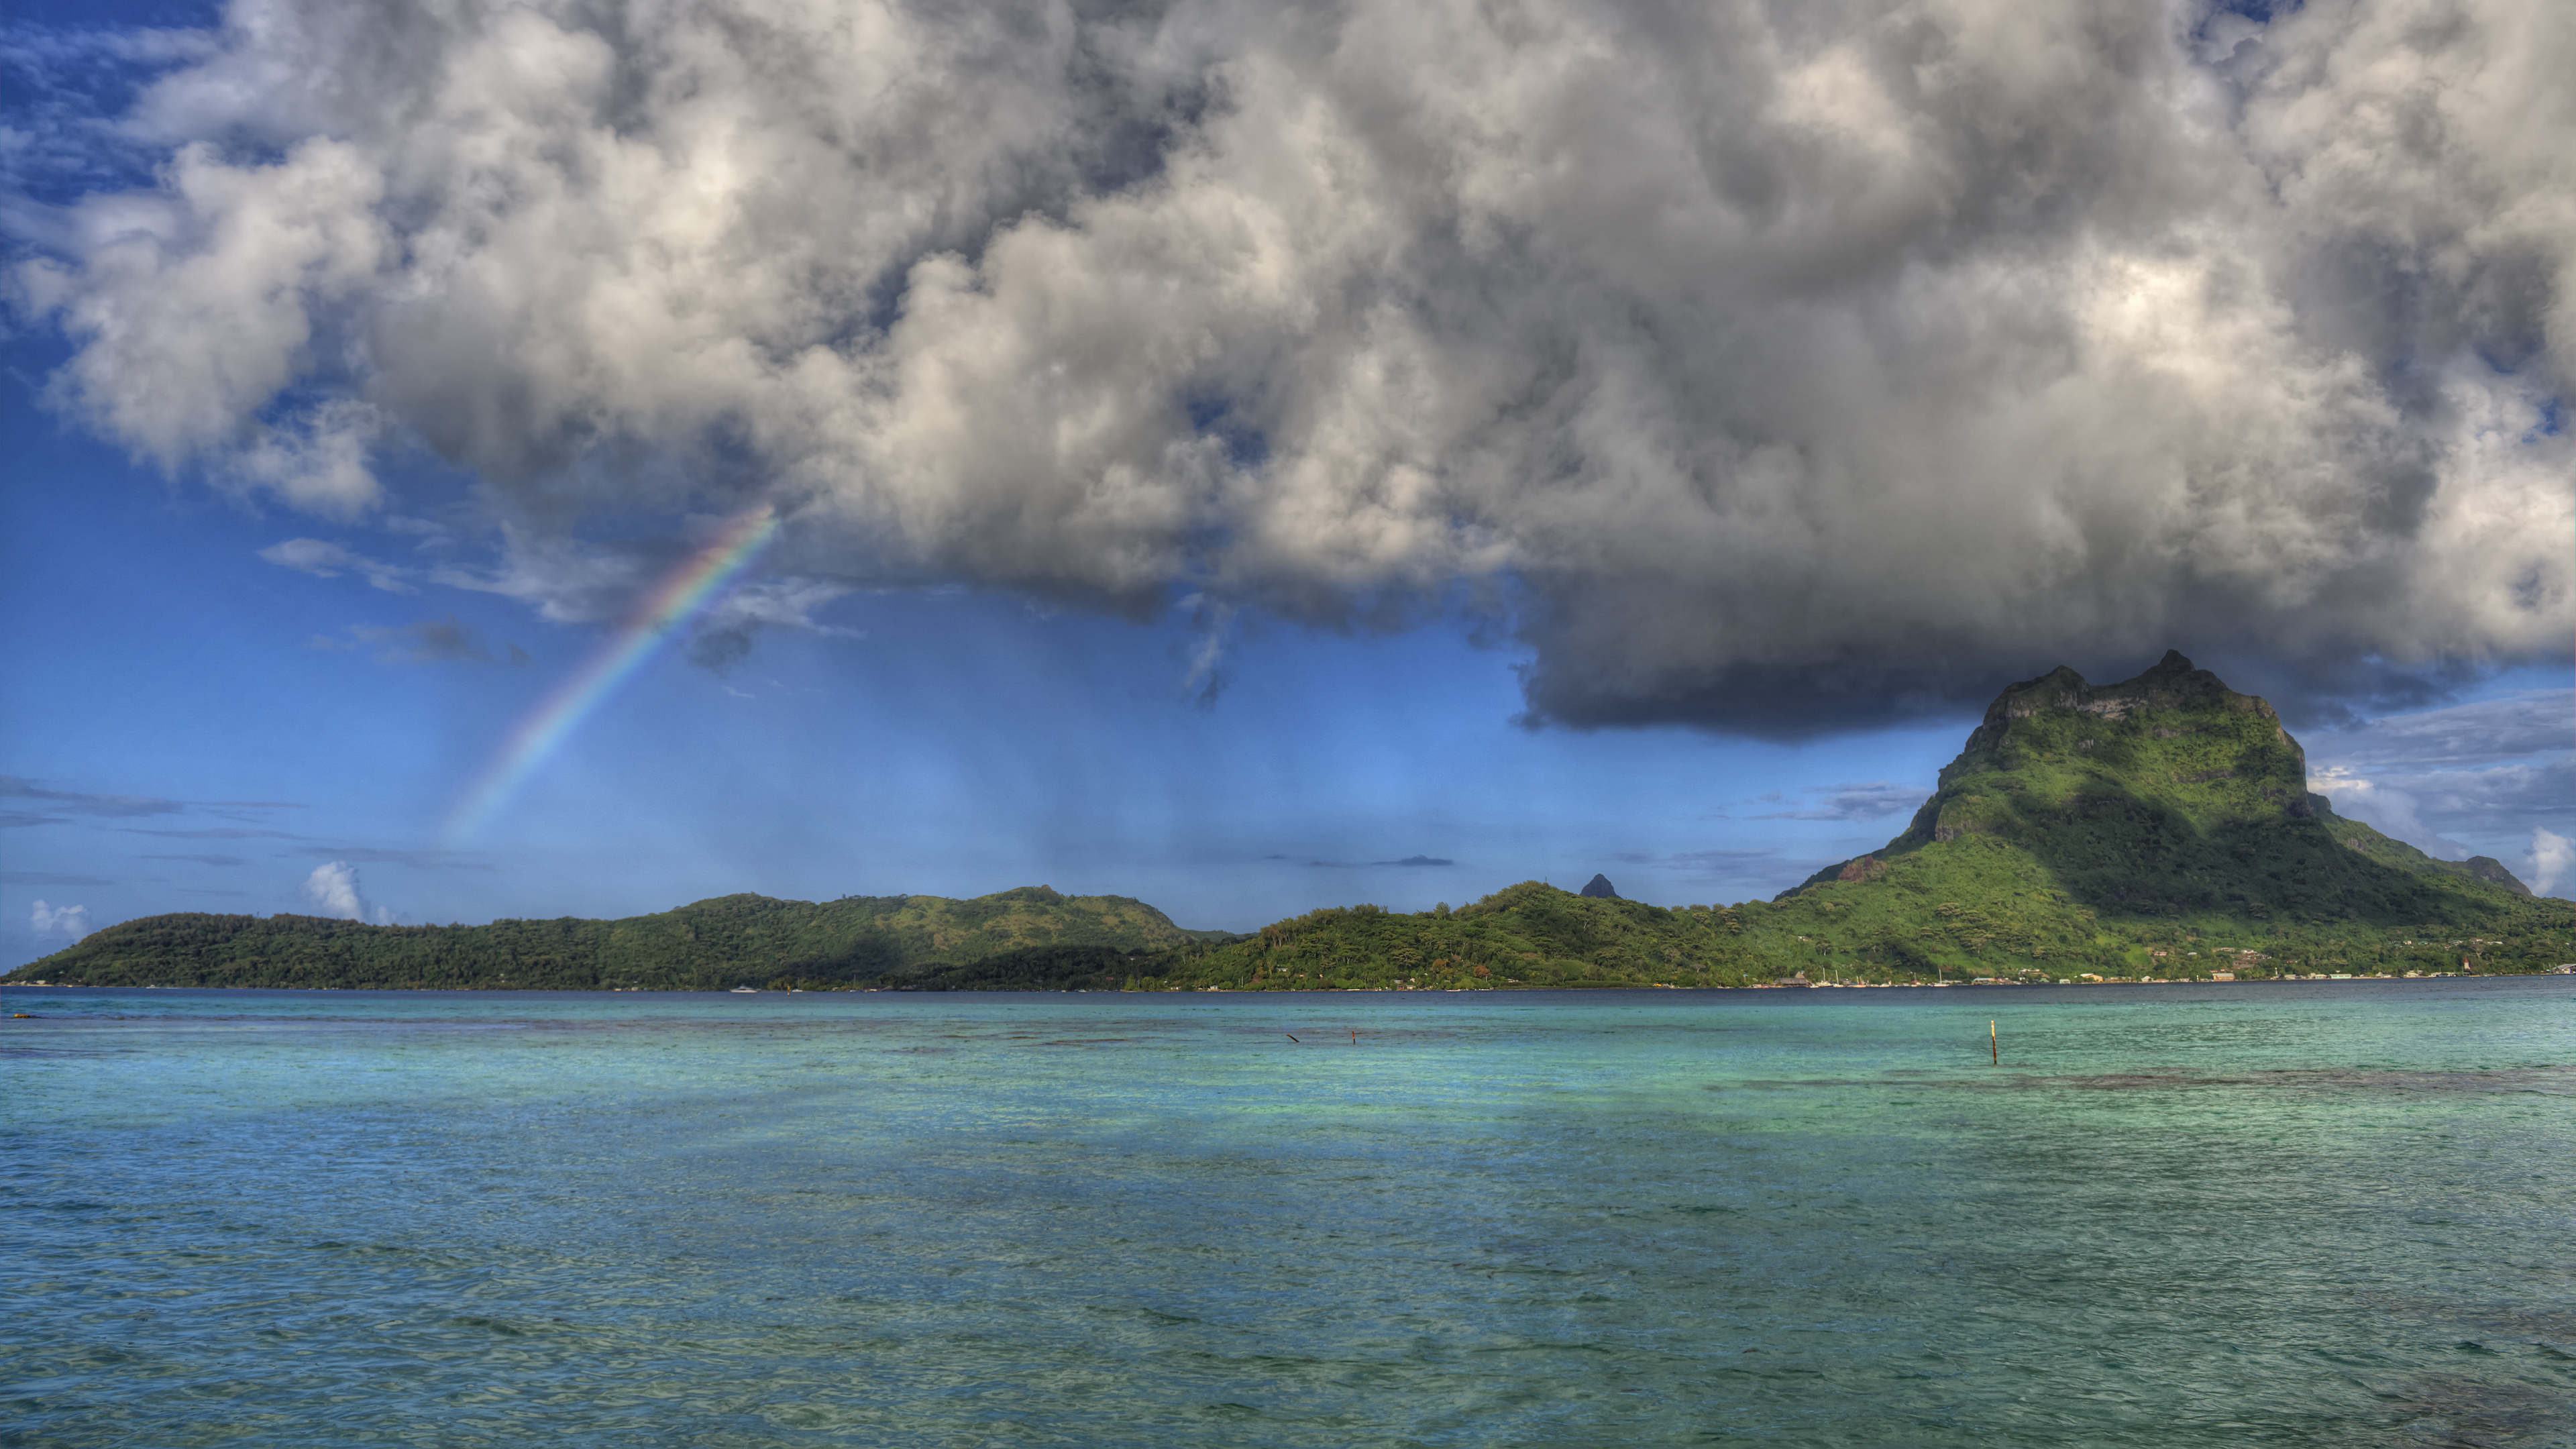 Rainbow on Bora Bora